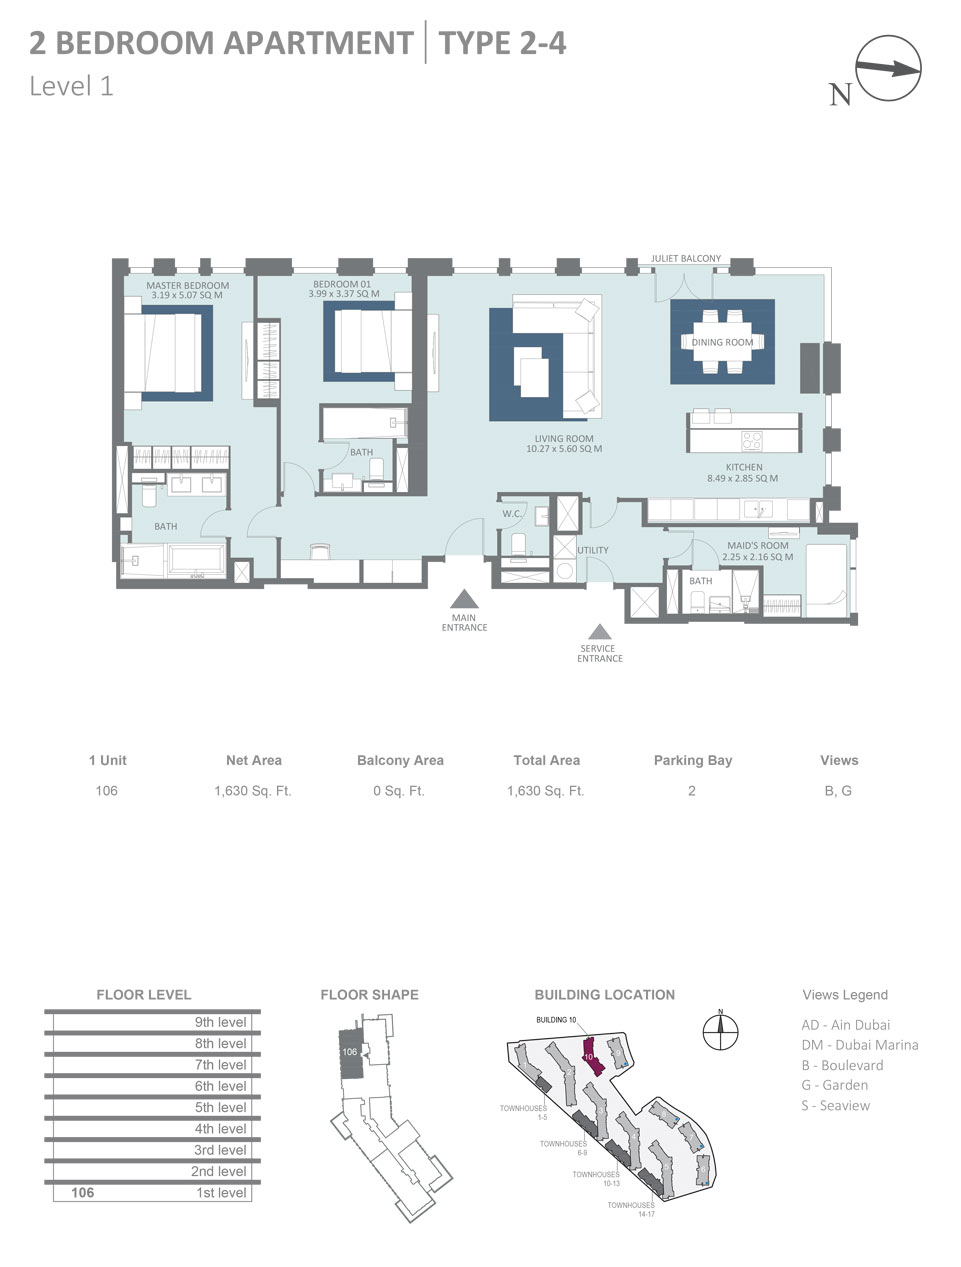 Building 10 - 2 Bedroom Apartment Type 2, 4, Level 1, Size 1630  sq. ft.